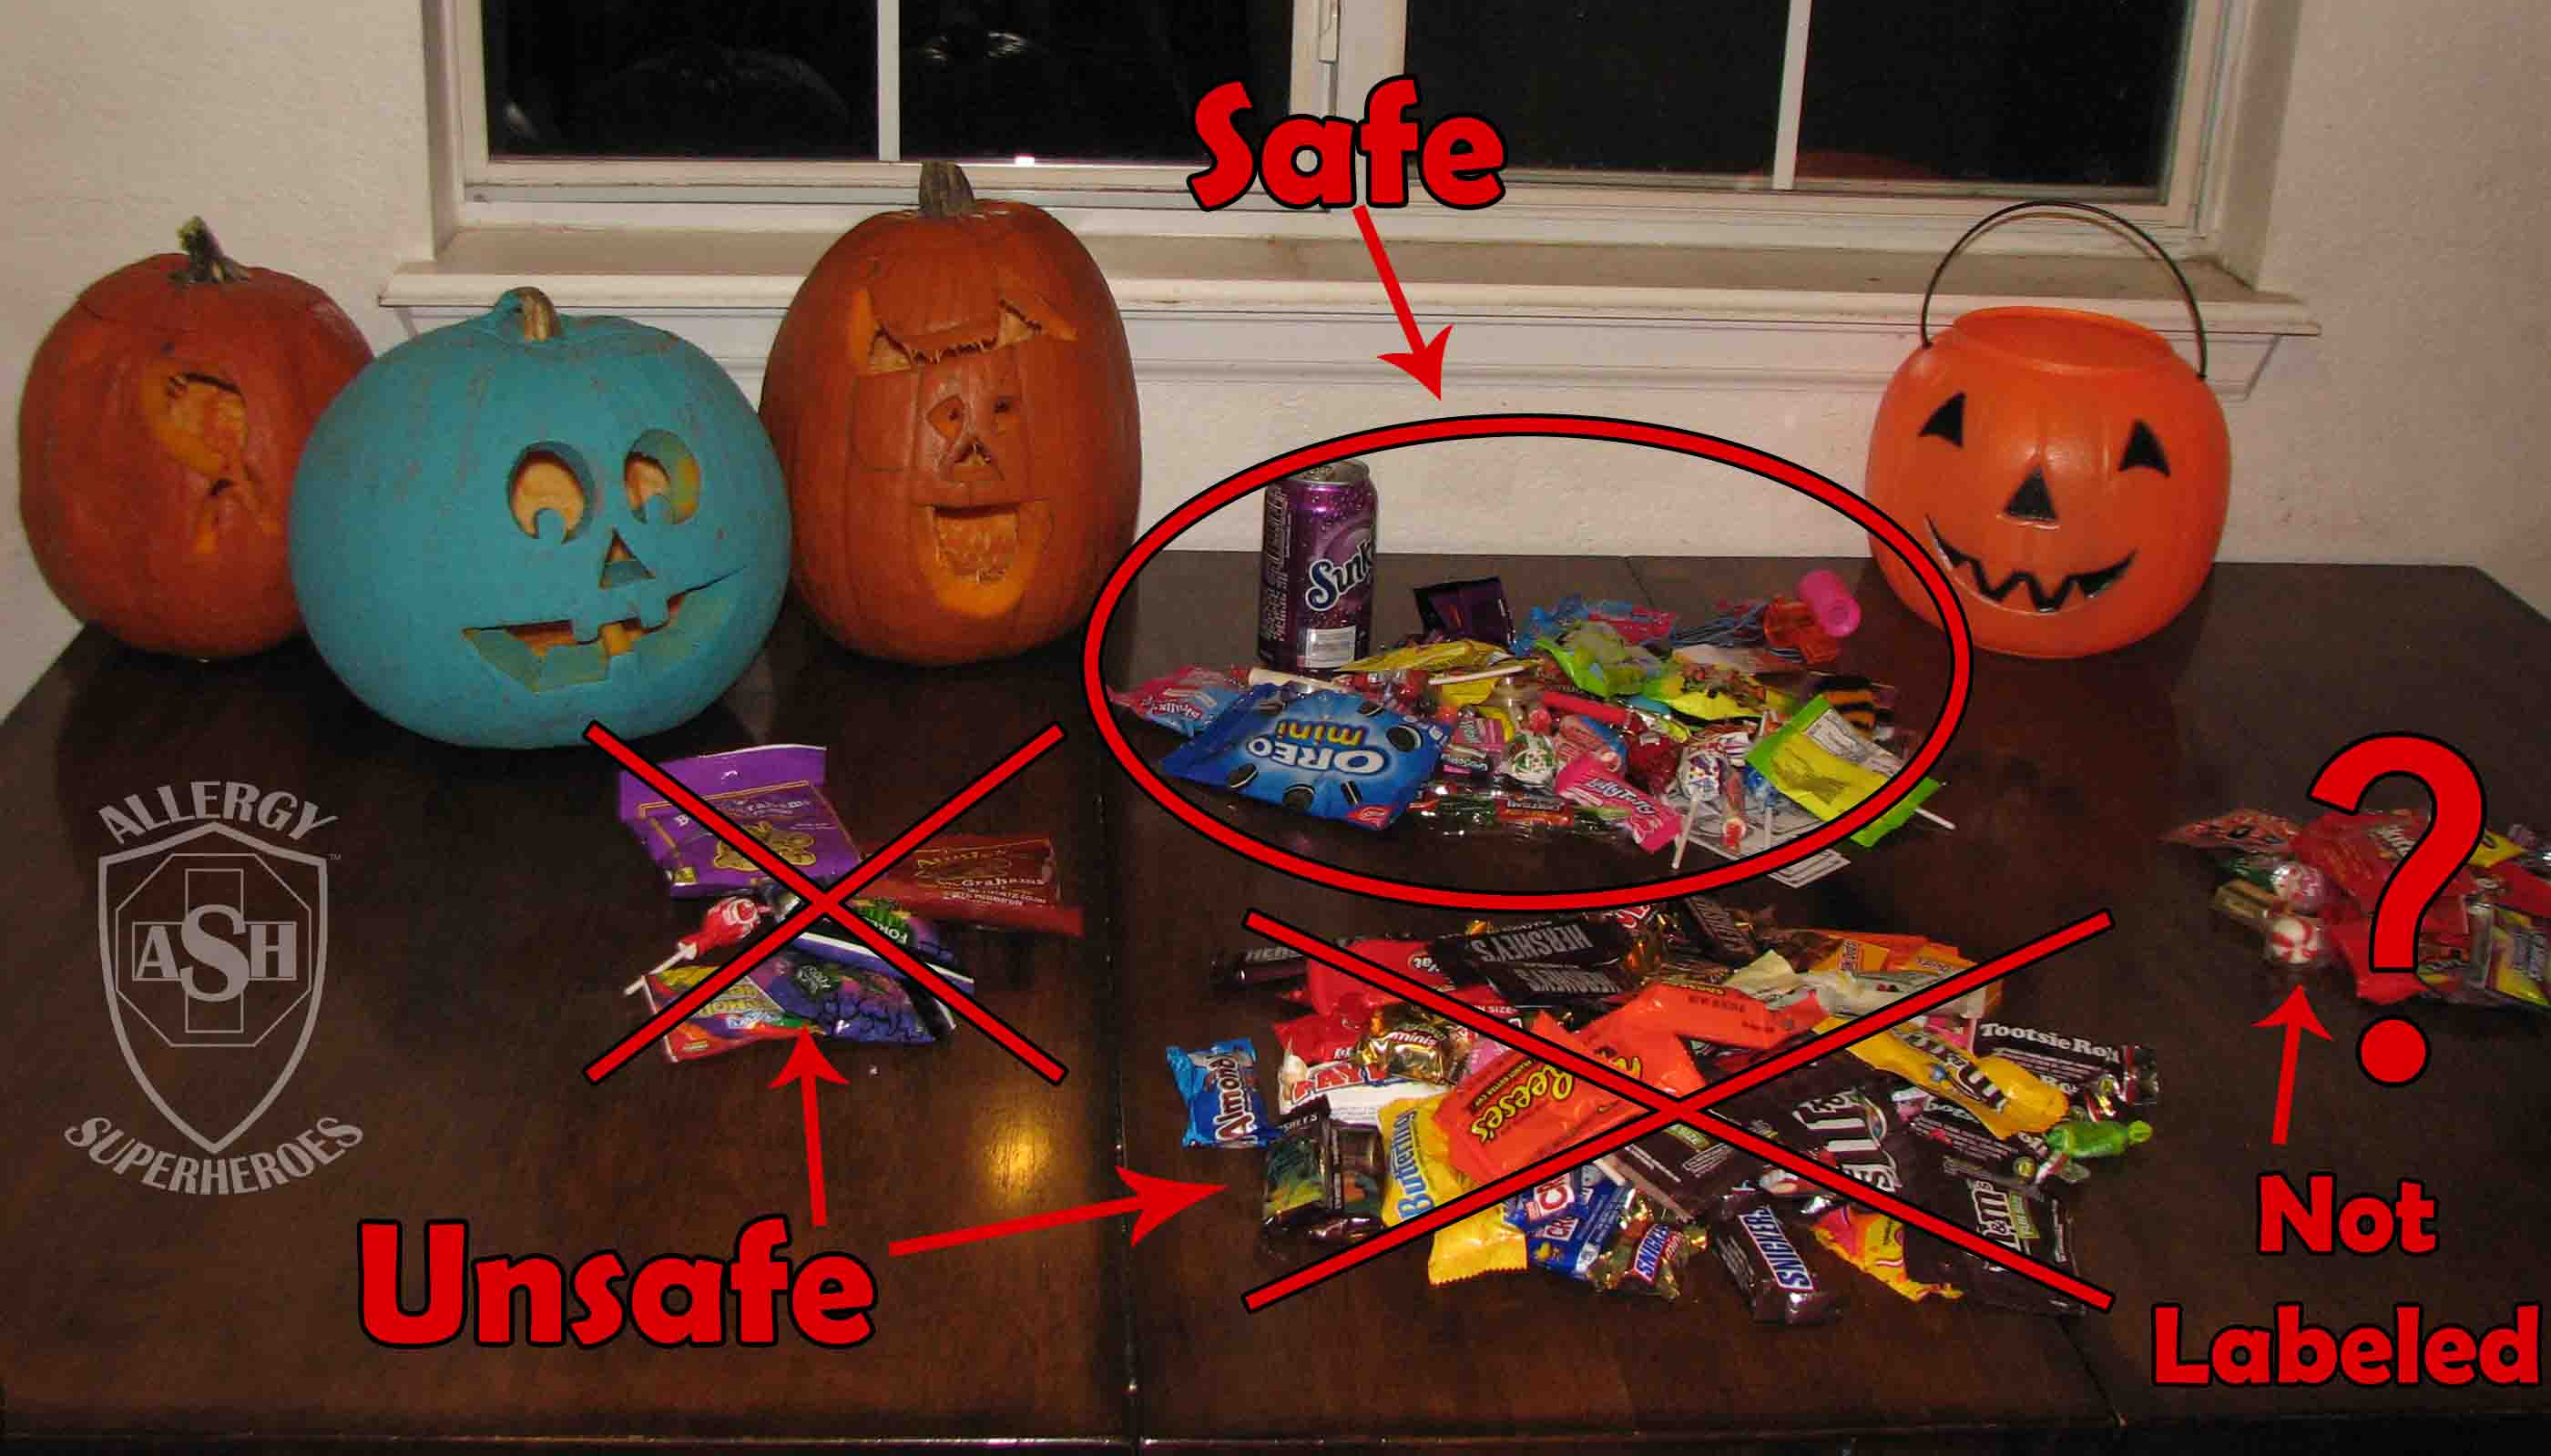 Make a Plan for your Unsafe Halloween Candy | Allergy Superheroes